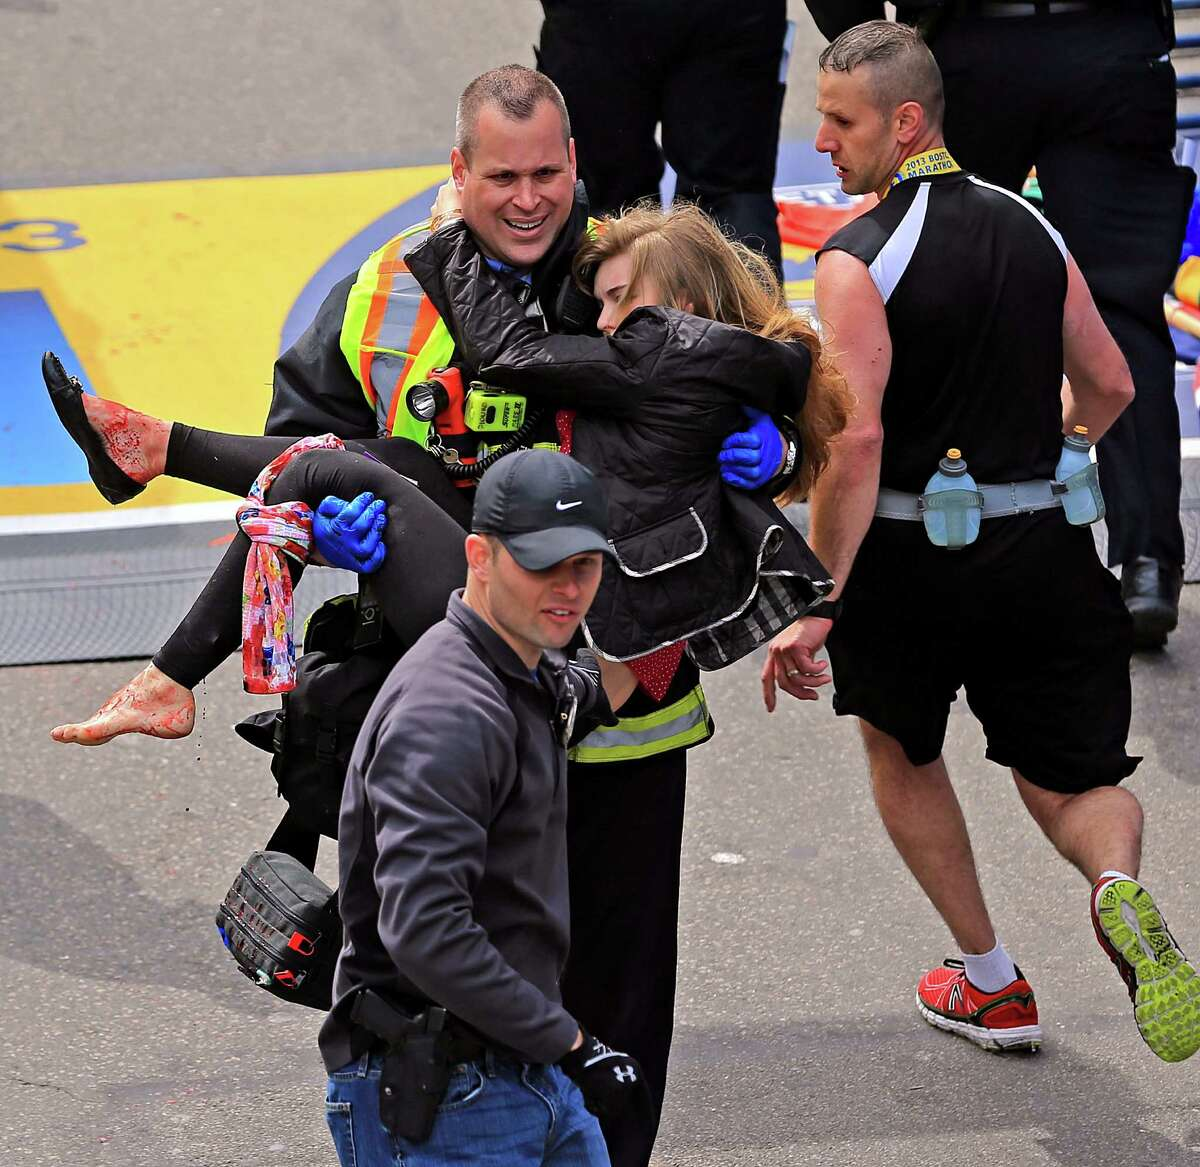 Emergency personnel aid Victoria McGrath, a Northeastern University student from Weston , Conn. after she was injured in the explosions near the finish line at the Boston Marathon in Boston, Mass. on Monday, April 15, 2013.